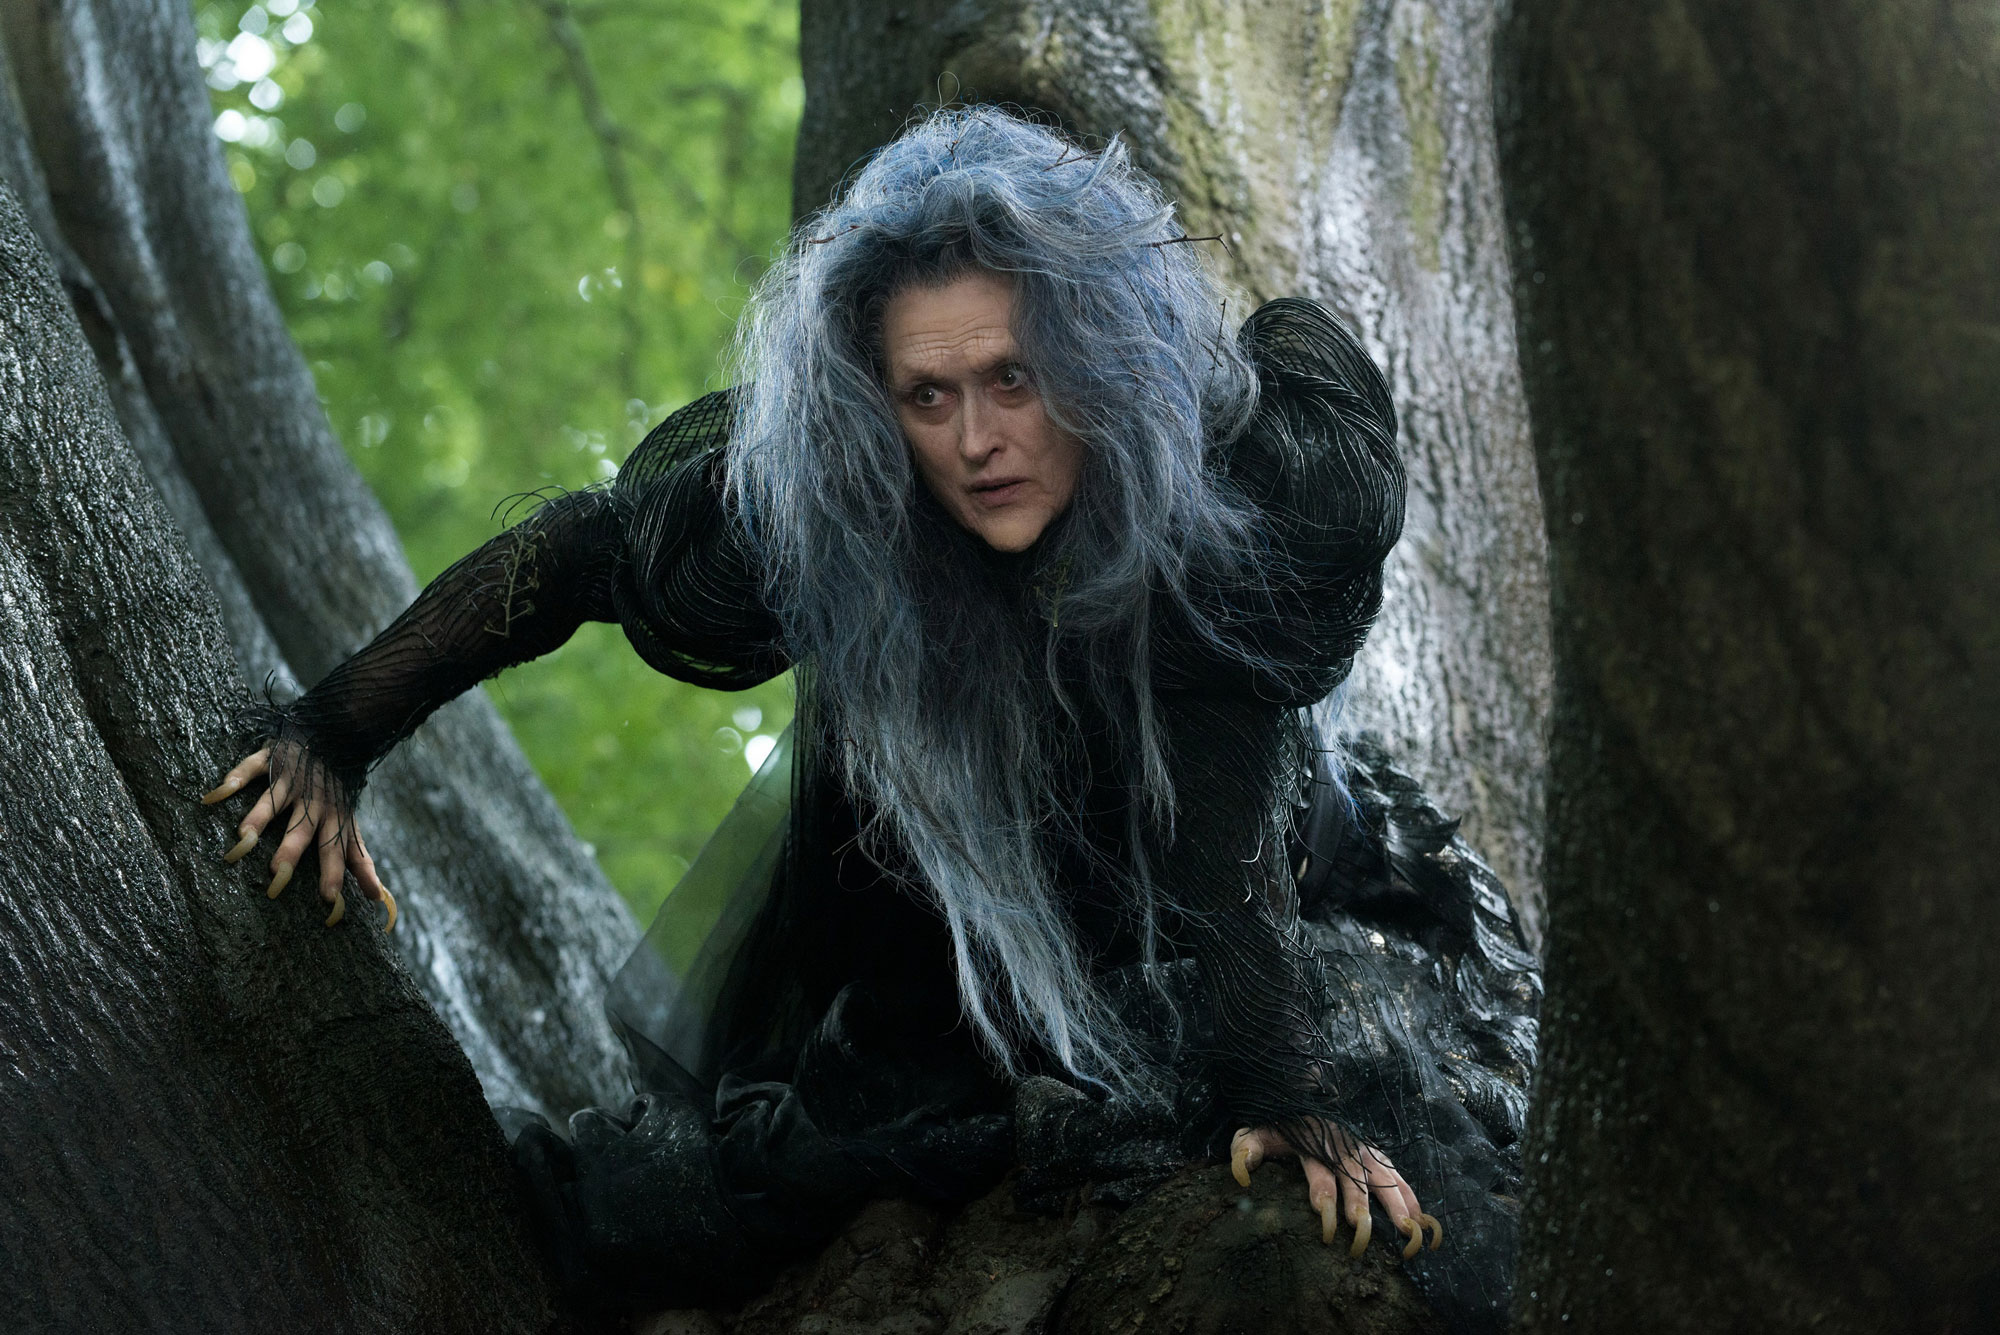 into the woods image Disney sorcière witch character